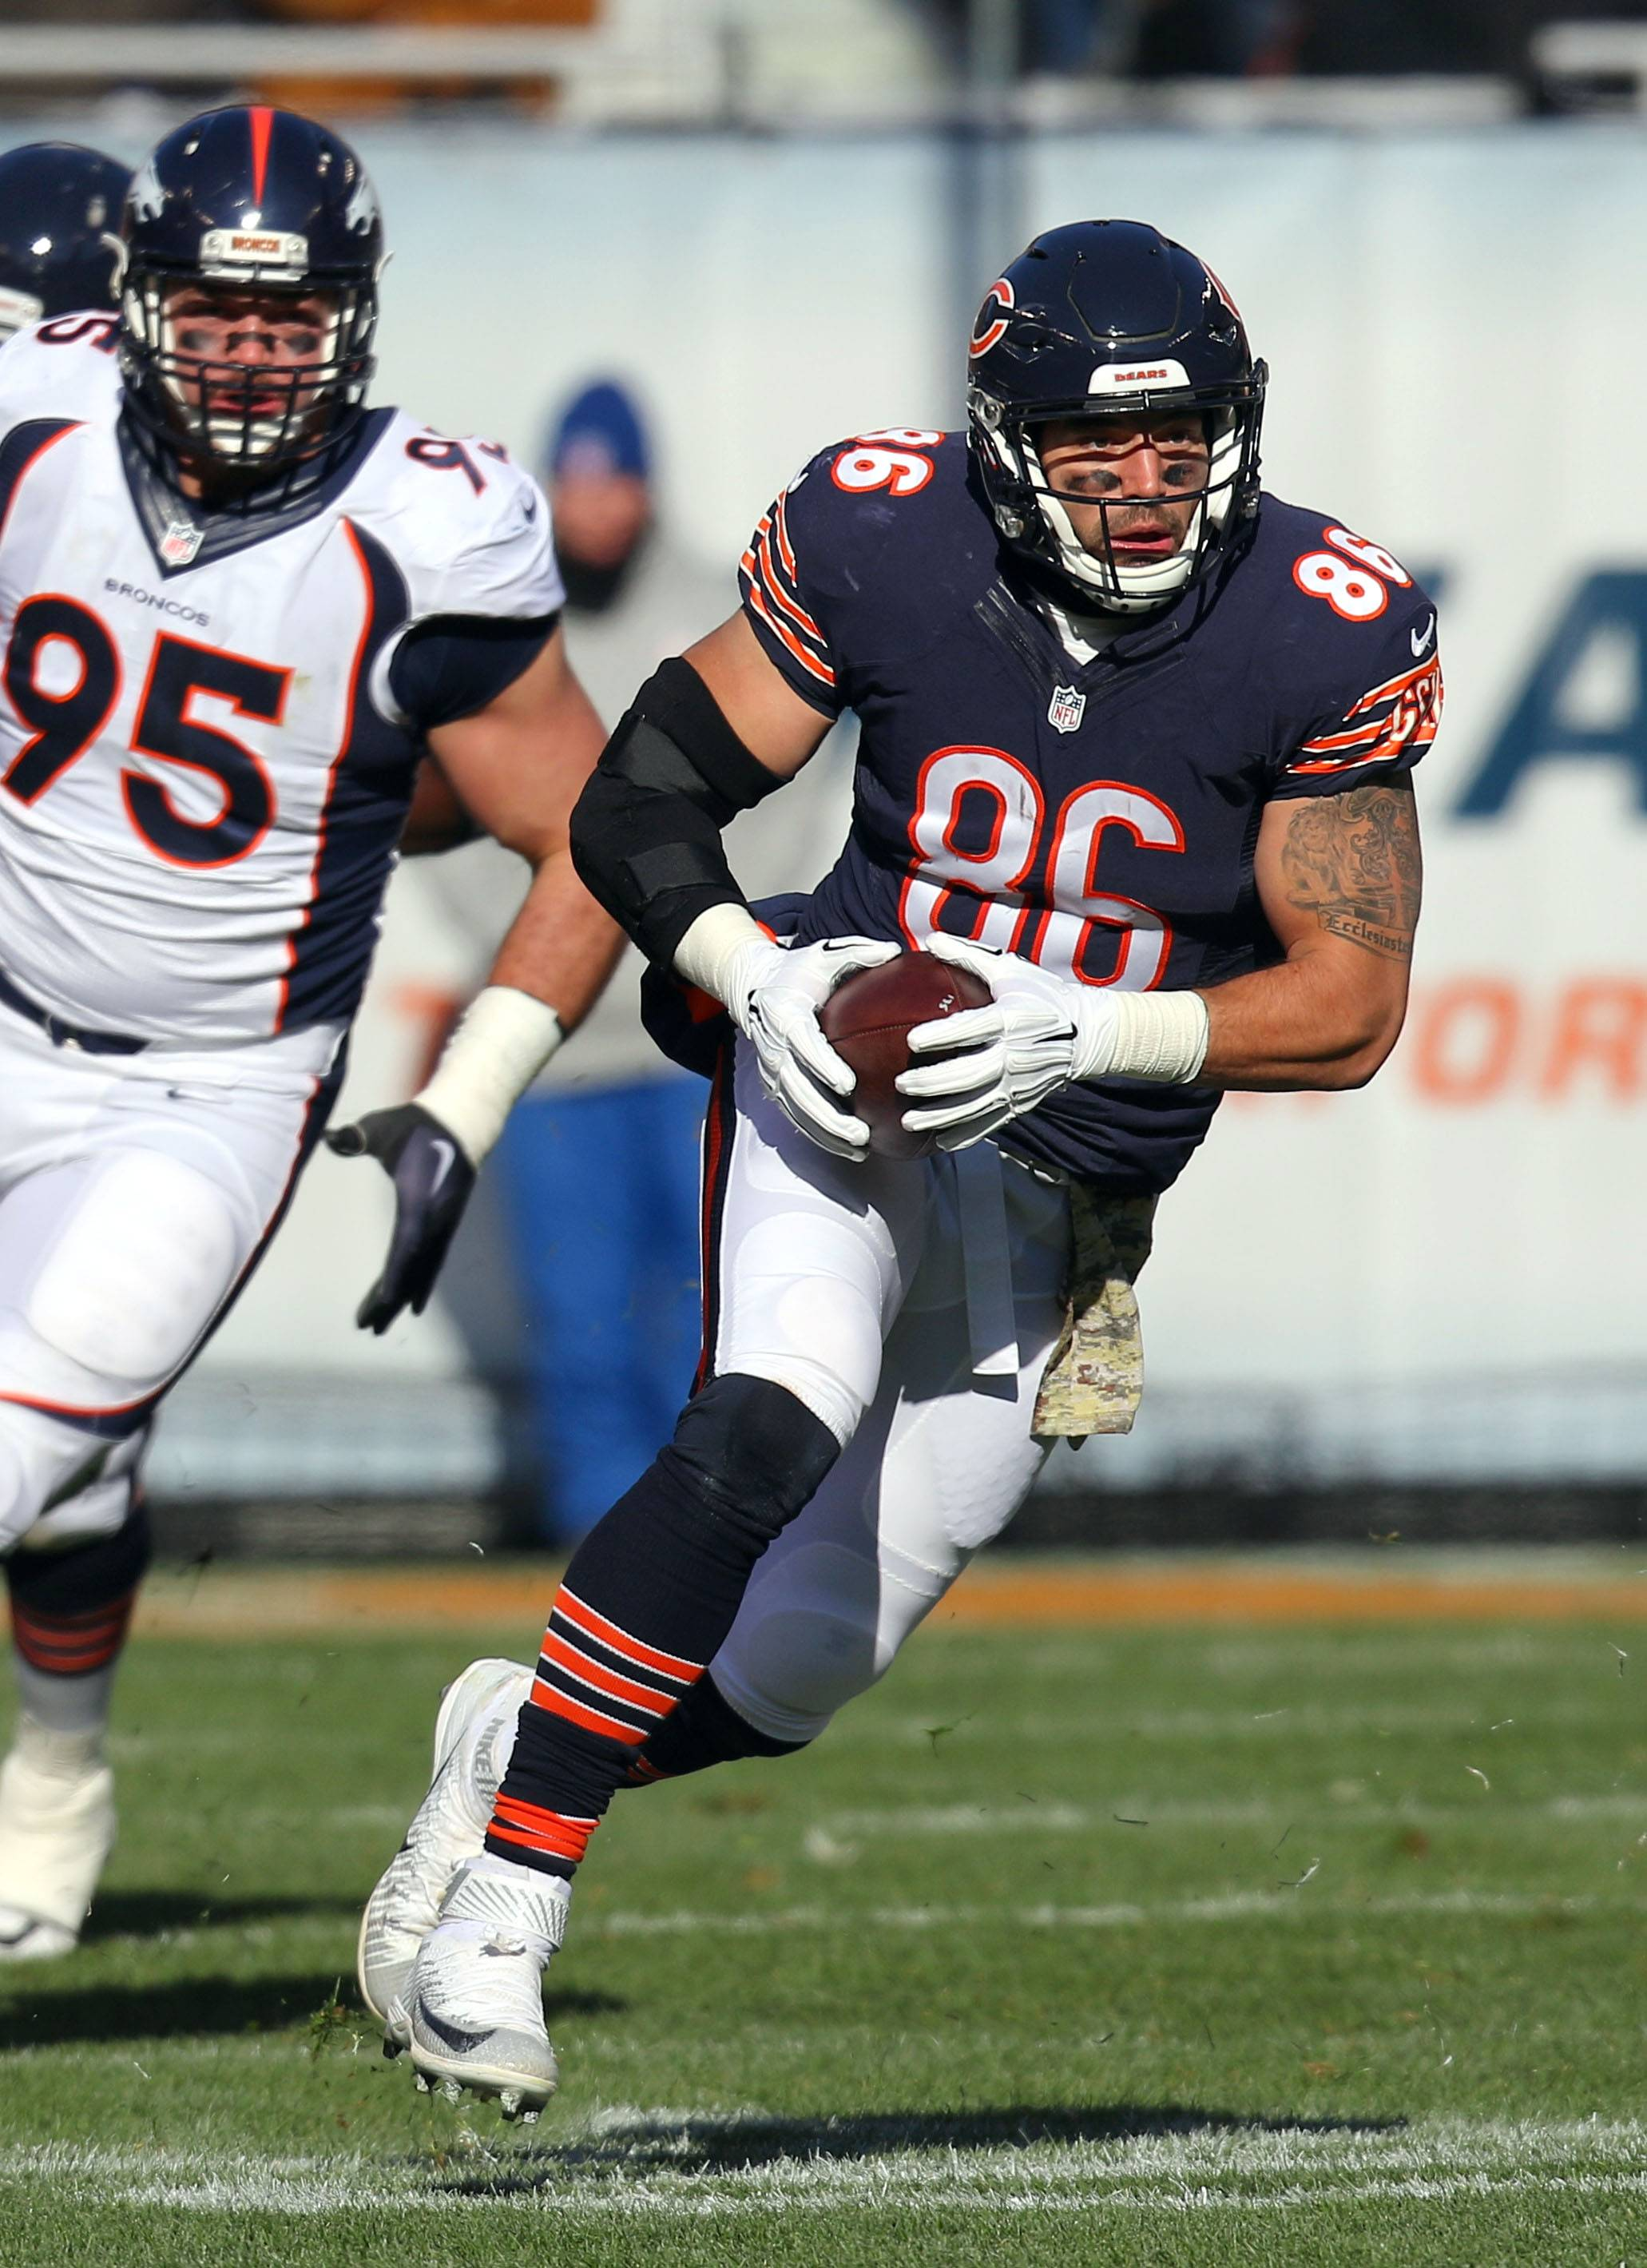 Chicago Bears tight end Zach Miller runs after the catch during their game Sunday, November 22, 2015 at Soldier Field in Chicago.